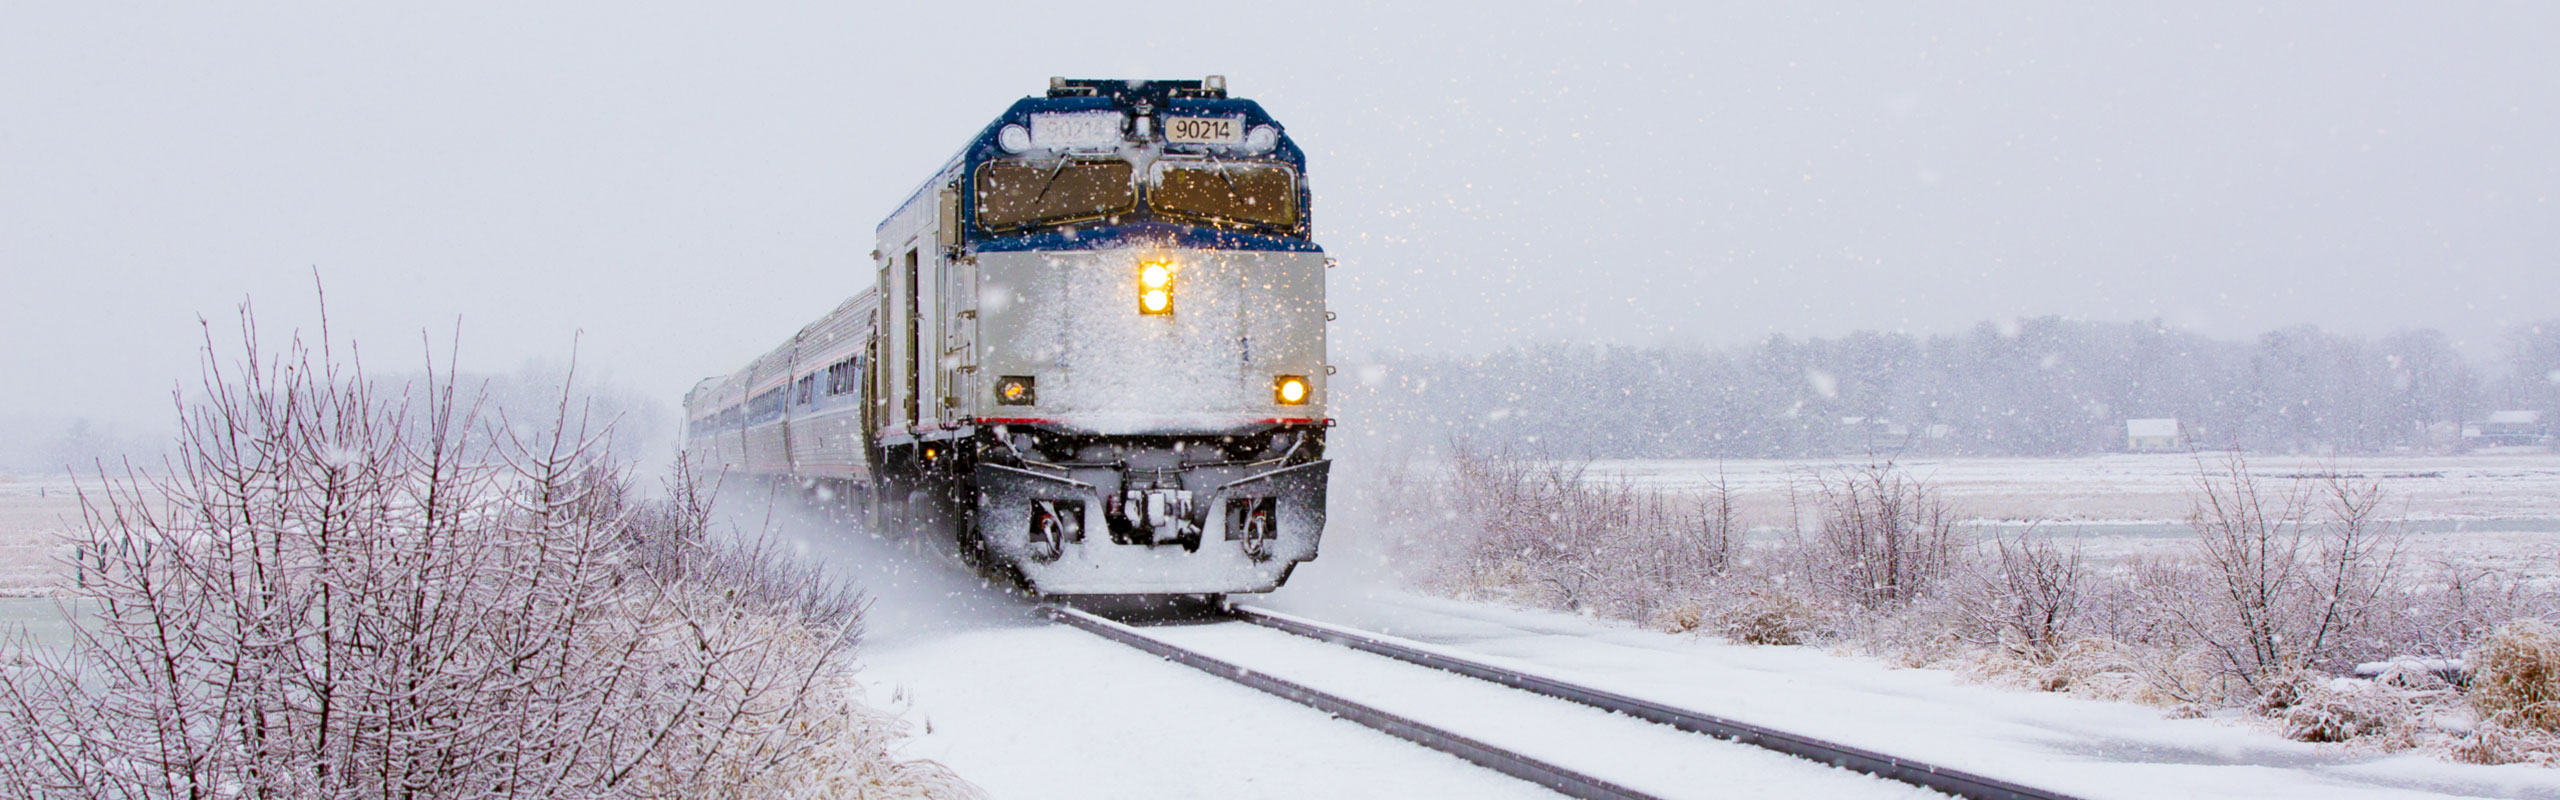 Amtrak Downeaster Winter Train